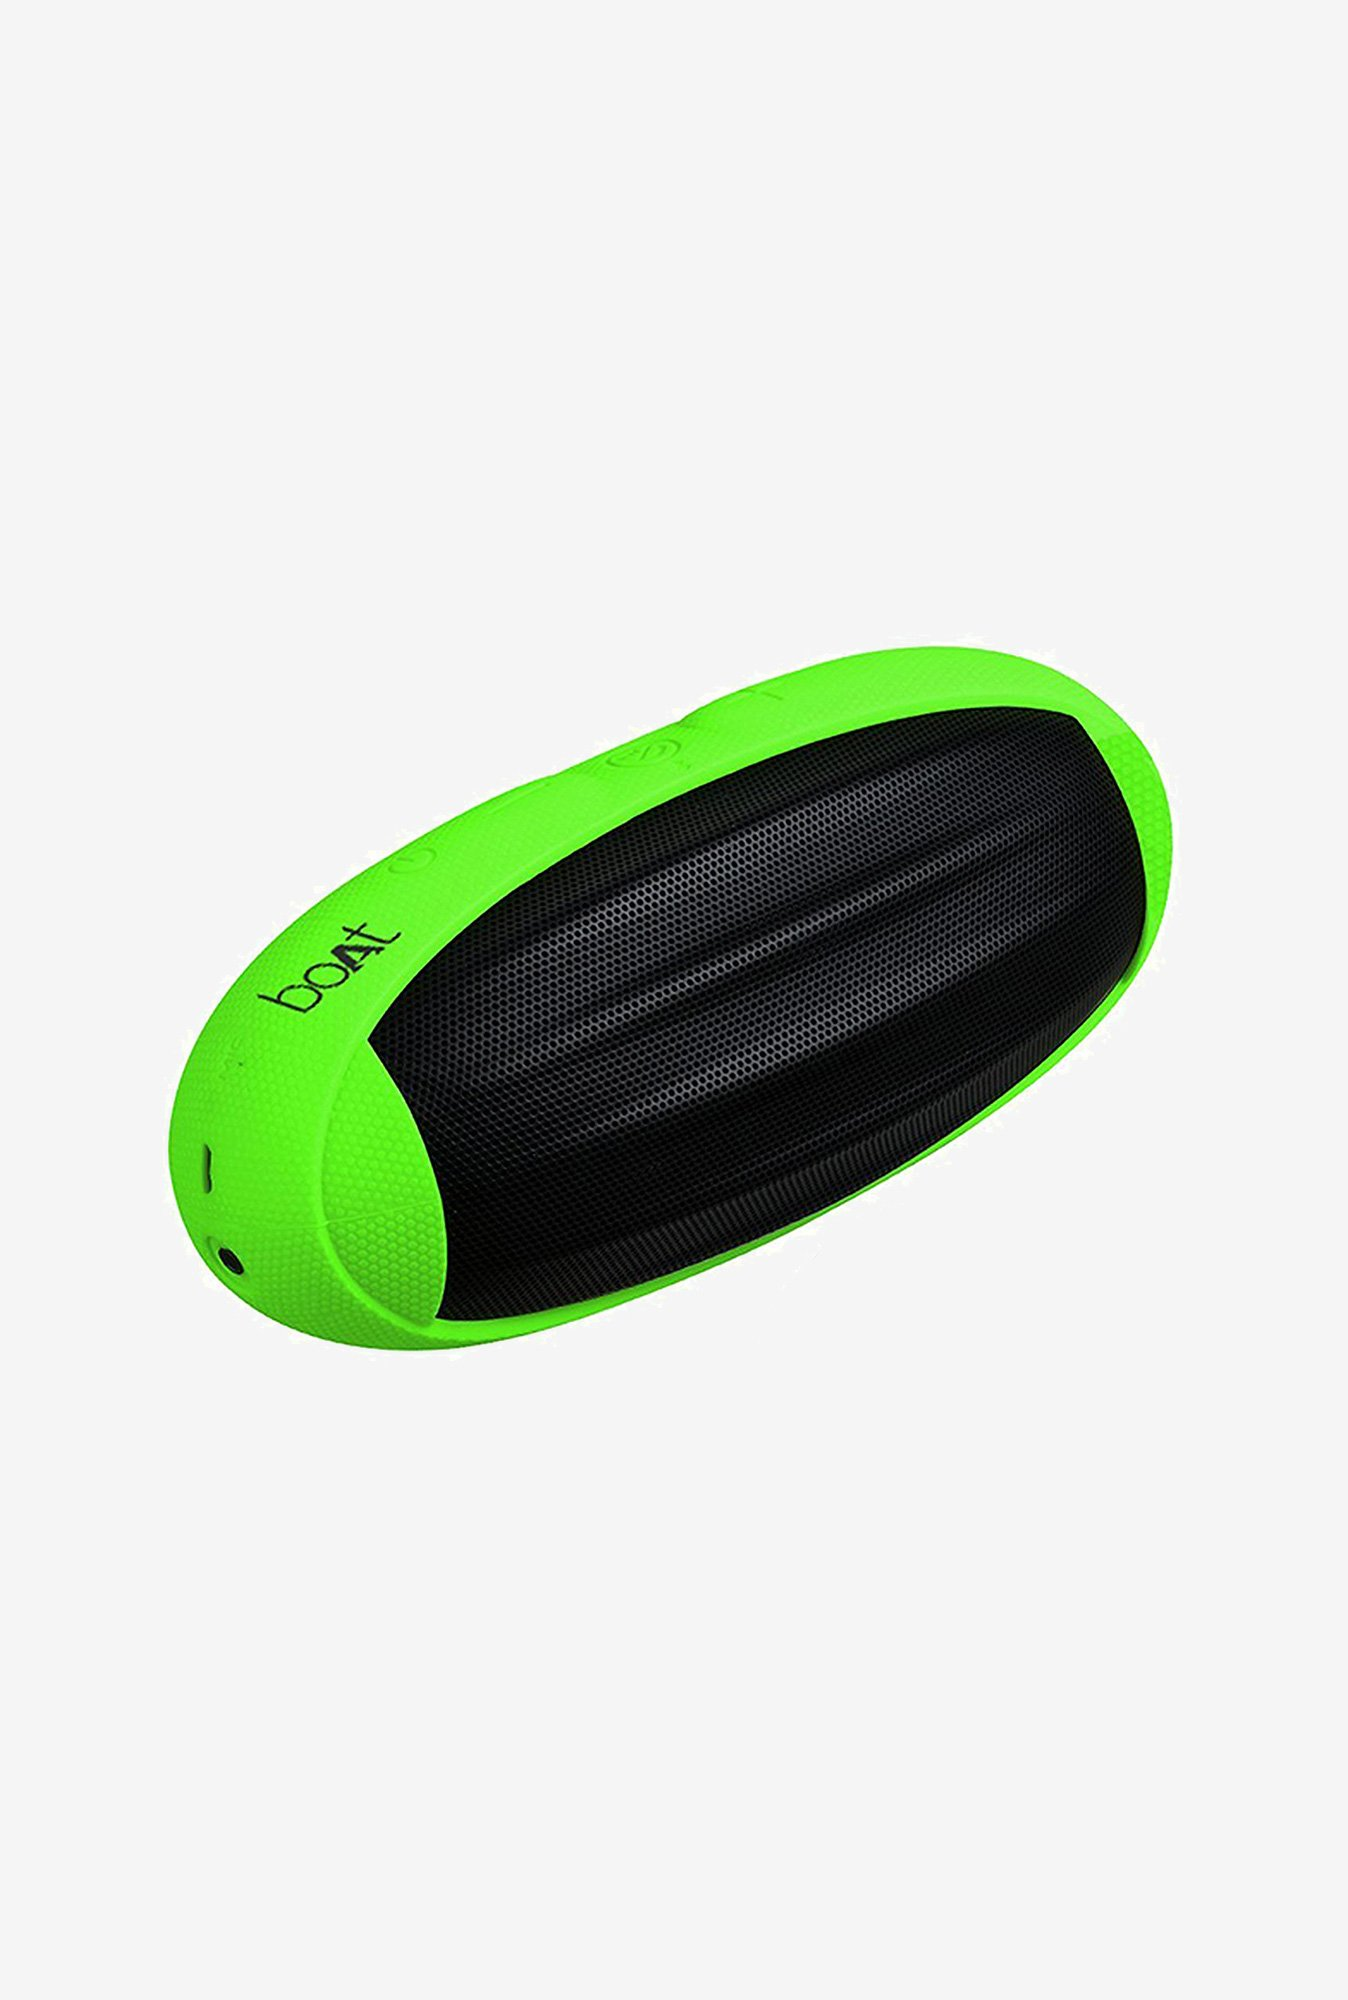 Boat Rugby Wireless Portable Stereo Speaker (Green)